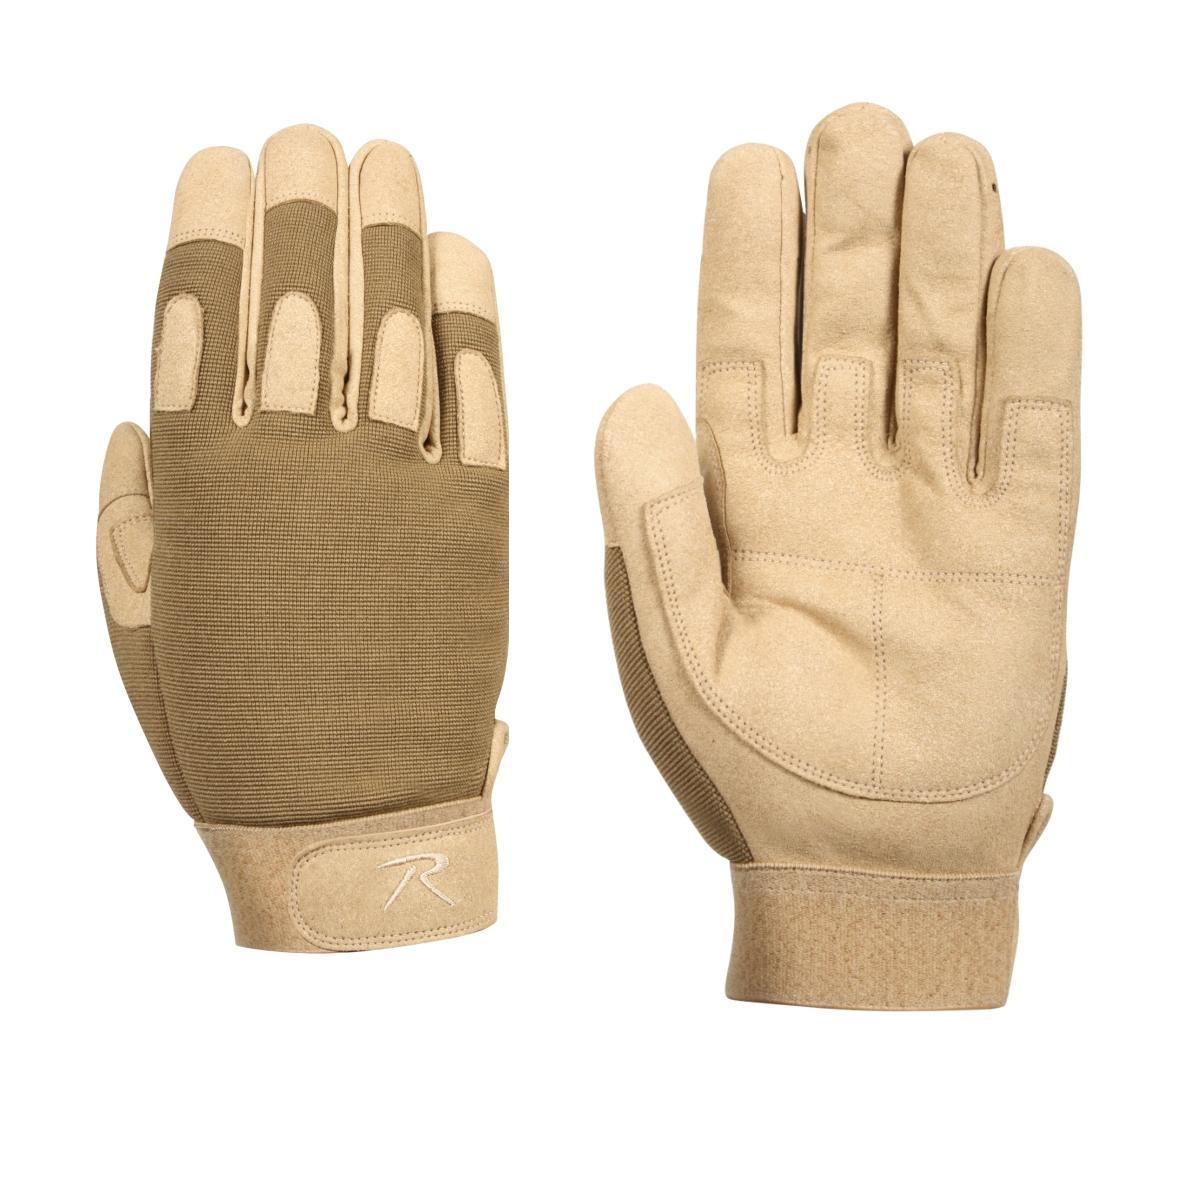 Rothco 4460//4461 Padded Knuckle Tactical Gloves Coyote Brown or Black